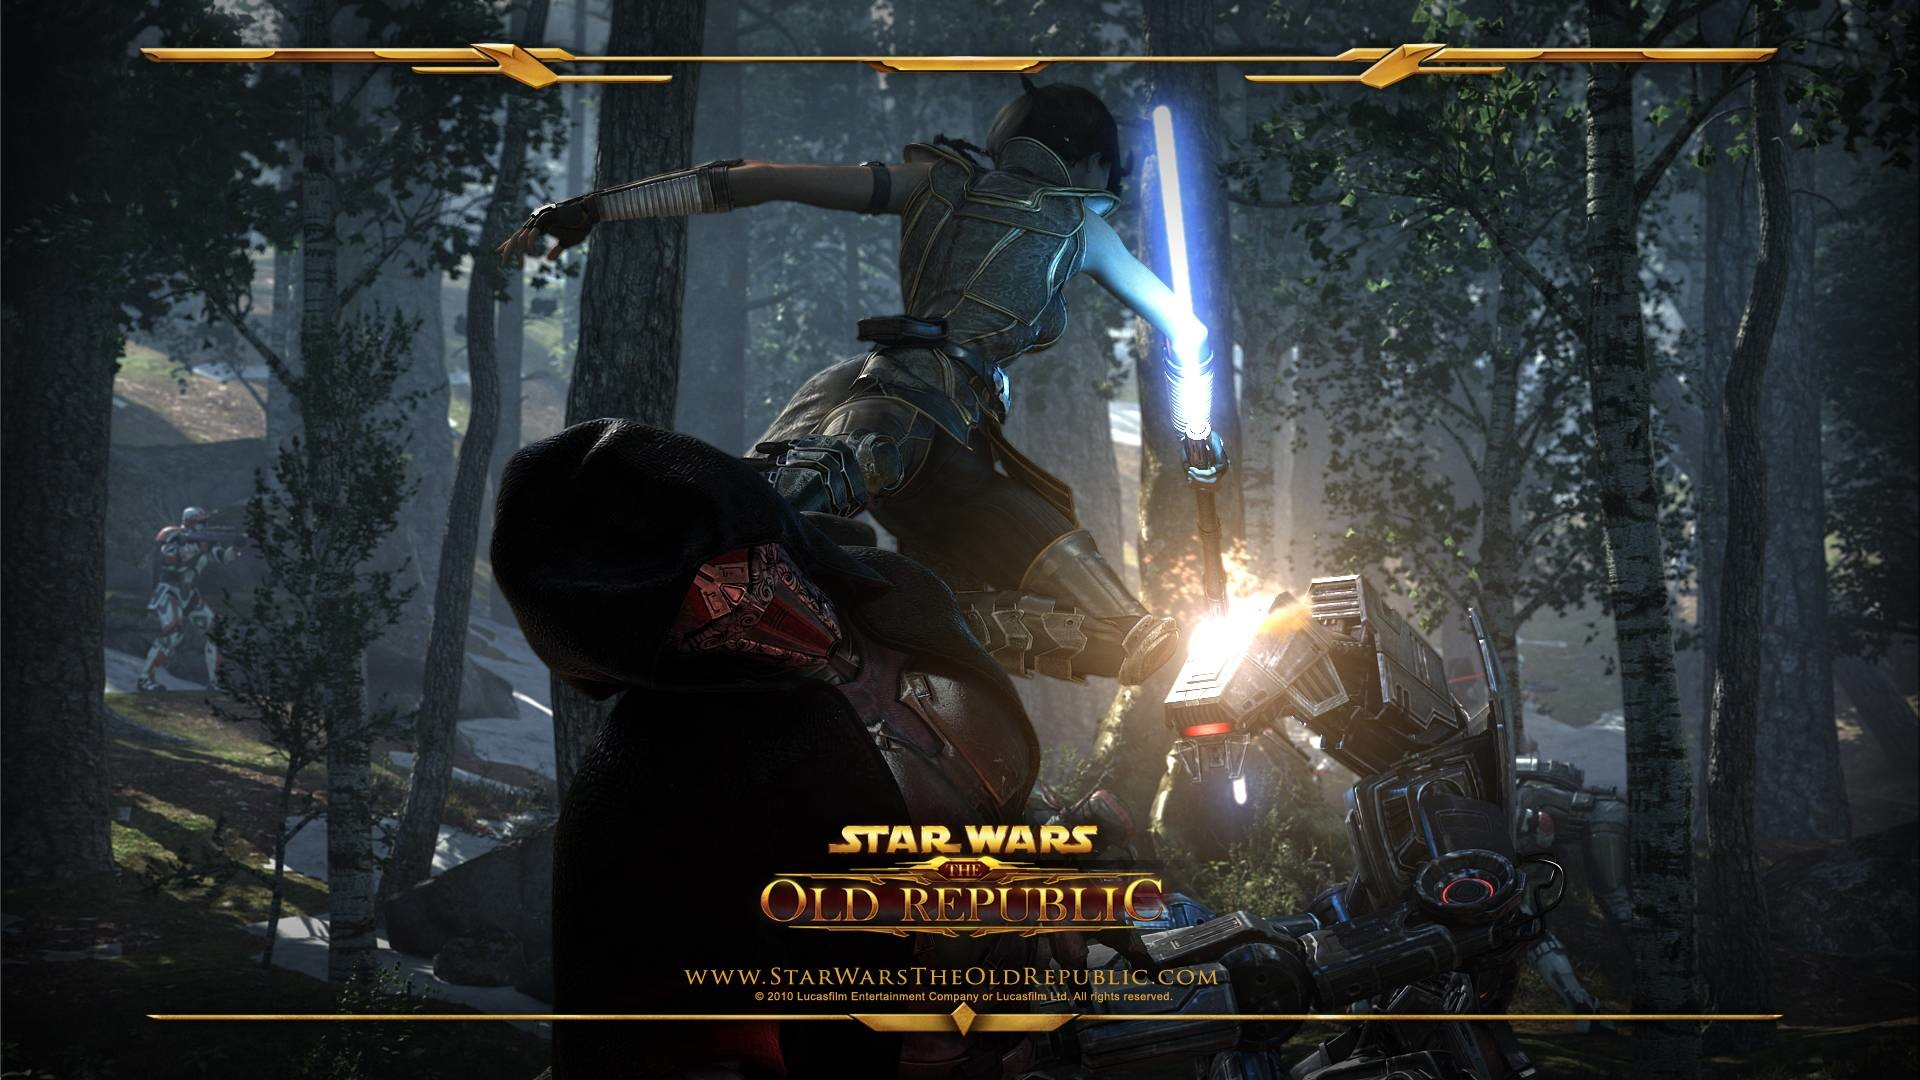 Res: 1920x1080, Star Wars: The Old Republic HD Wallpapers 8 - 1920 X 1080